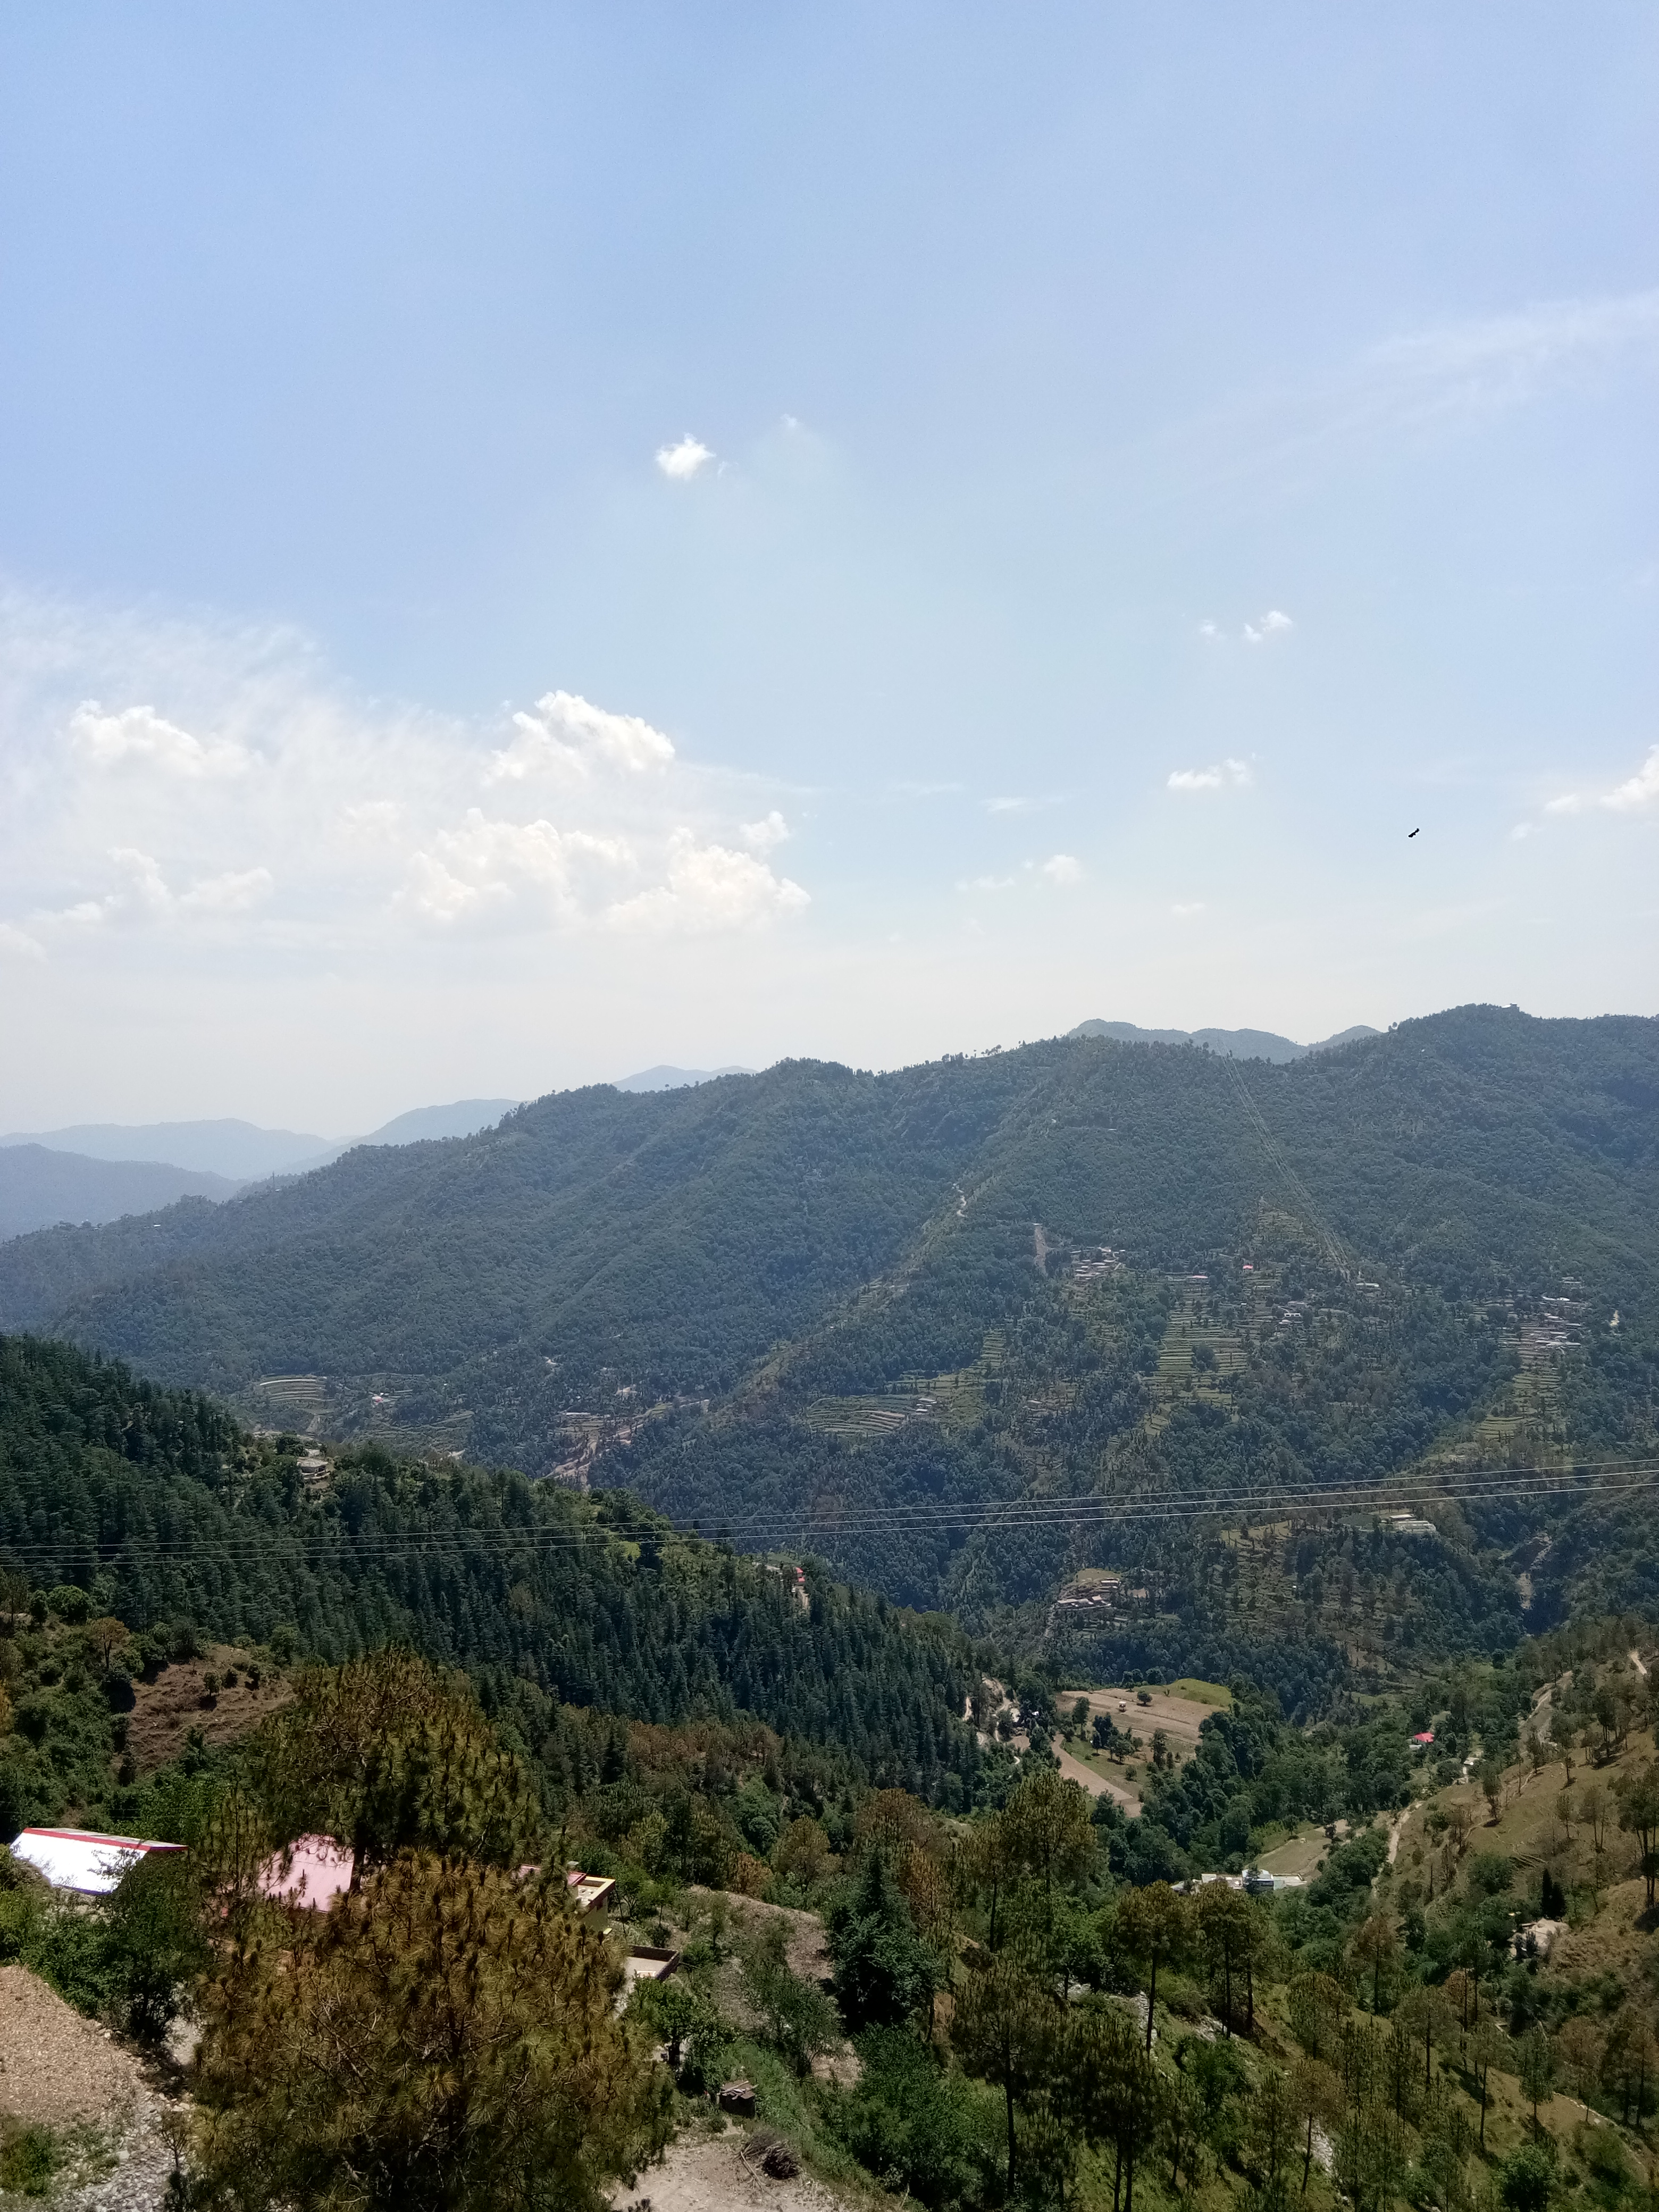 13 Biswa Map- Approved Plot for sale at Near Beolia Shimla — Drive in — Map approved 2+ — Sunny and beautiful View — 400m Link from Main Road — Price – 59 Lakhs